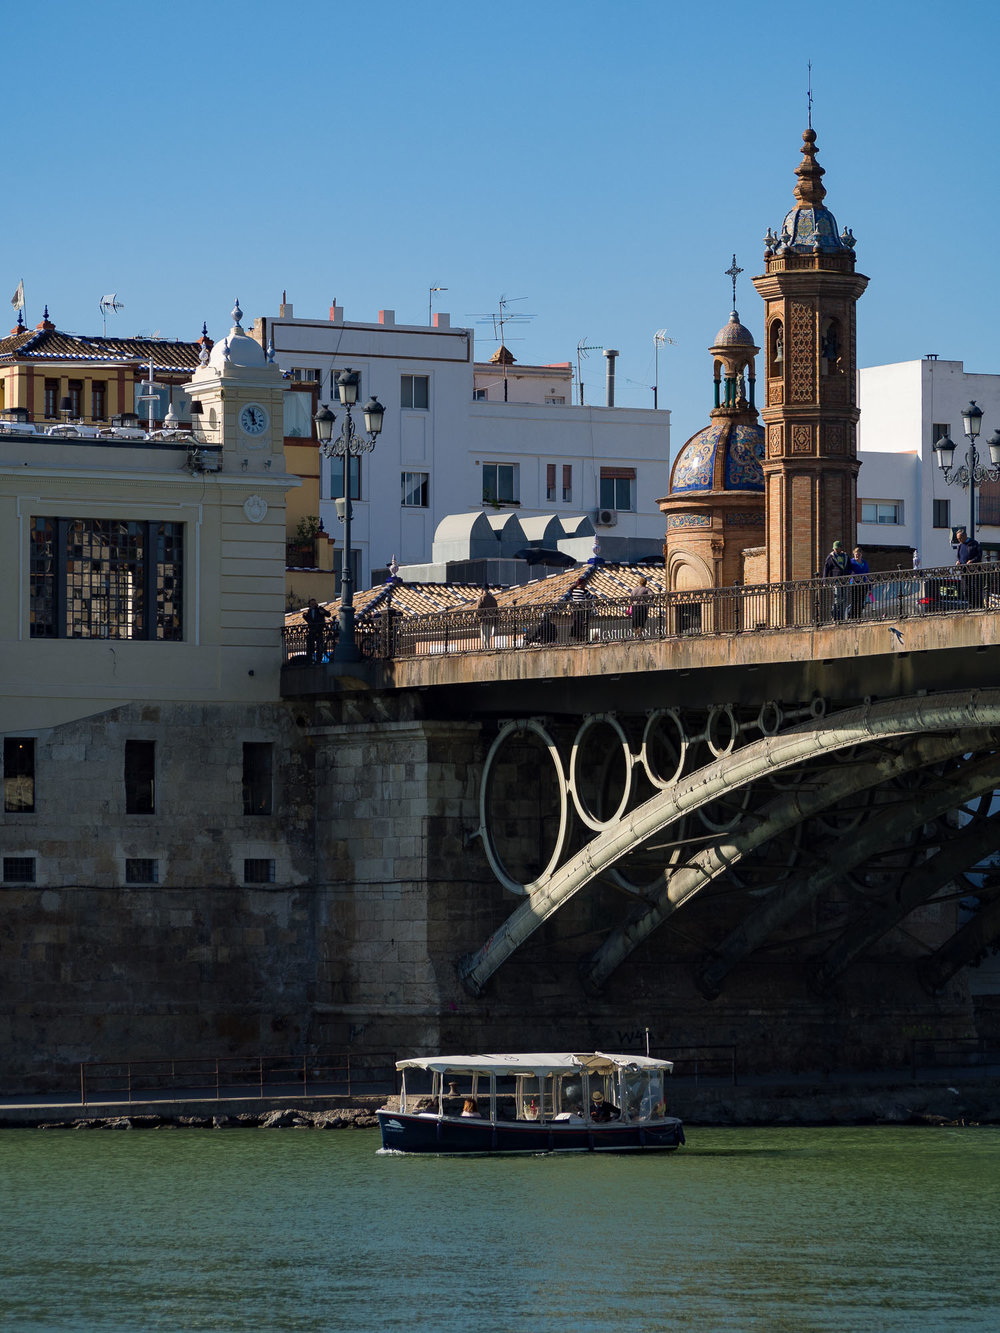 'Electric boat under Puente de Triana'  Oly E-M10 mkII + 40-150mm f/4-5.6R @ 78mm, ISO 200, 1/800, f/5.6